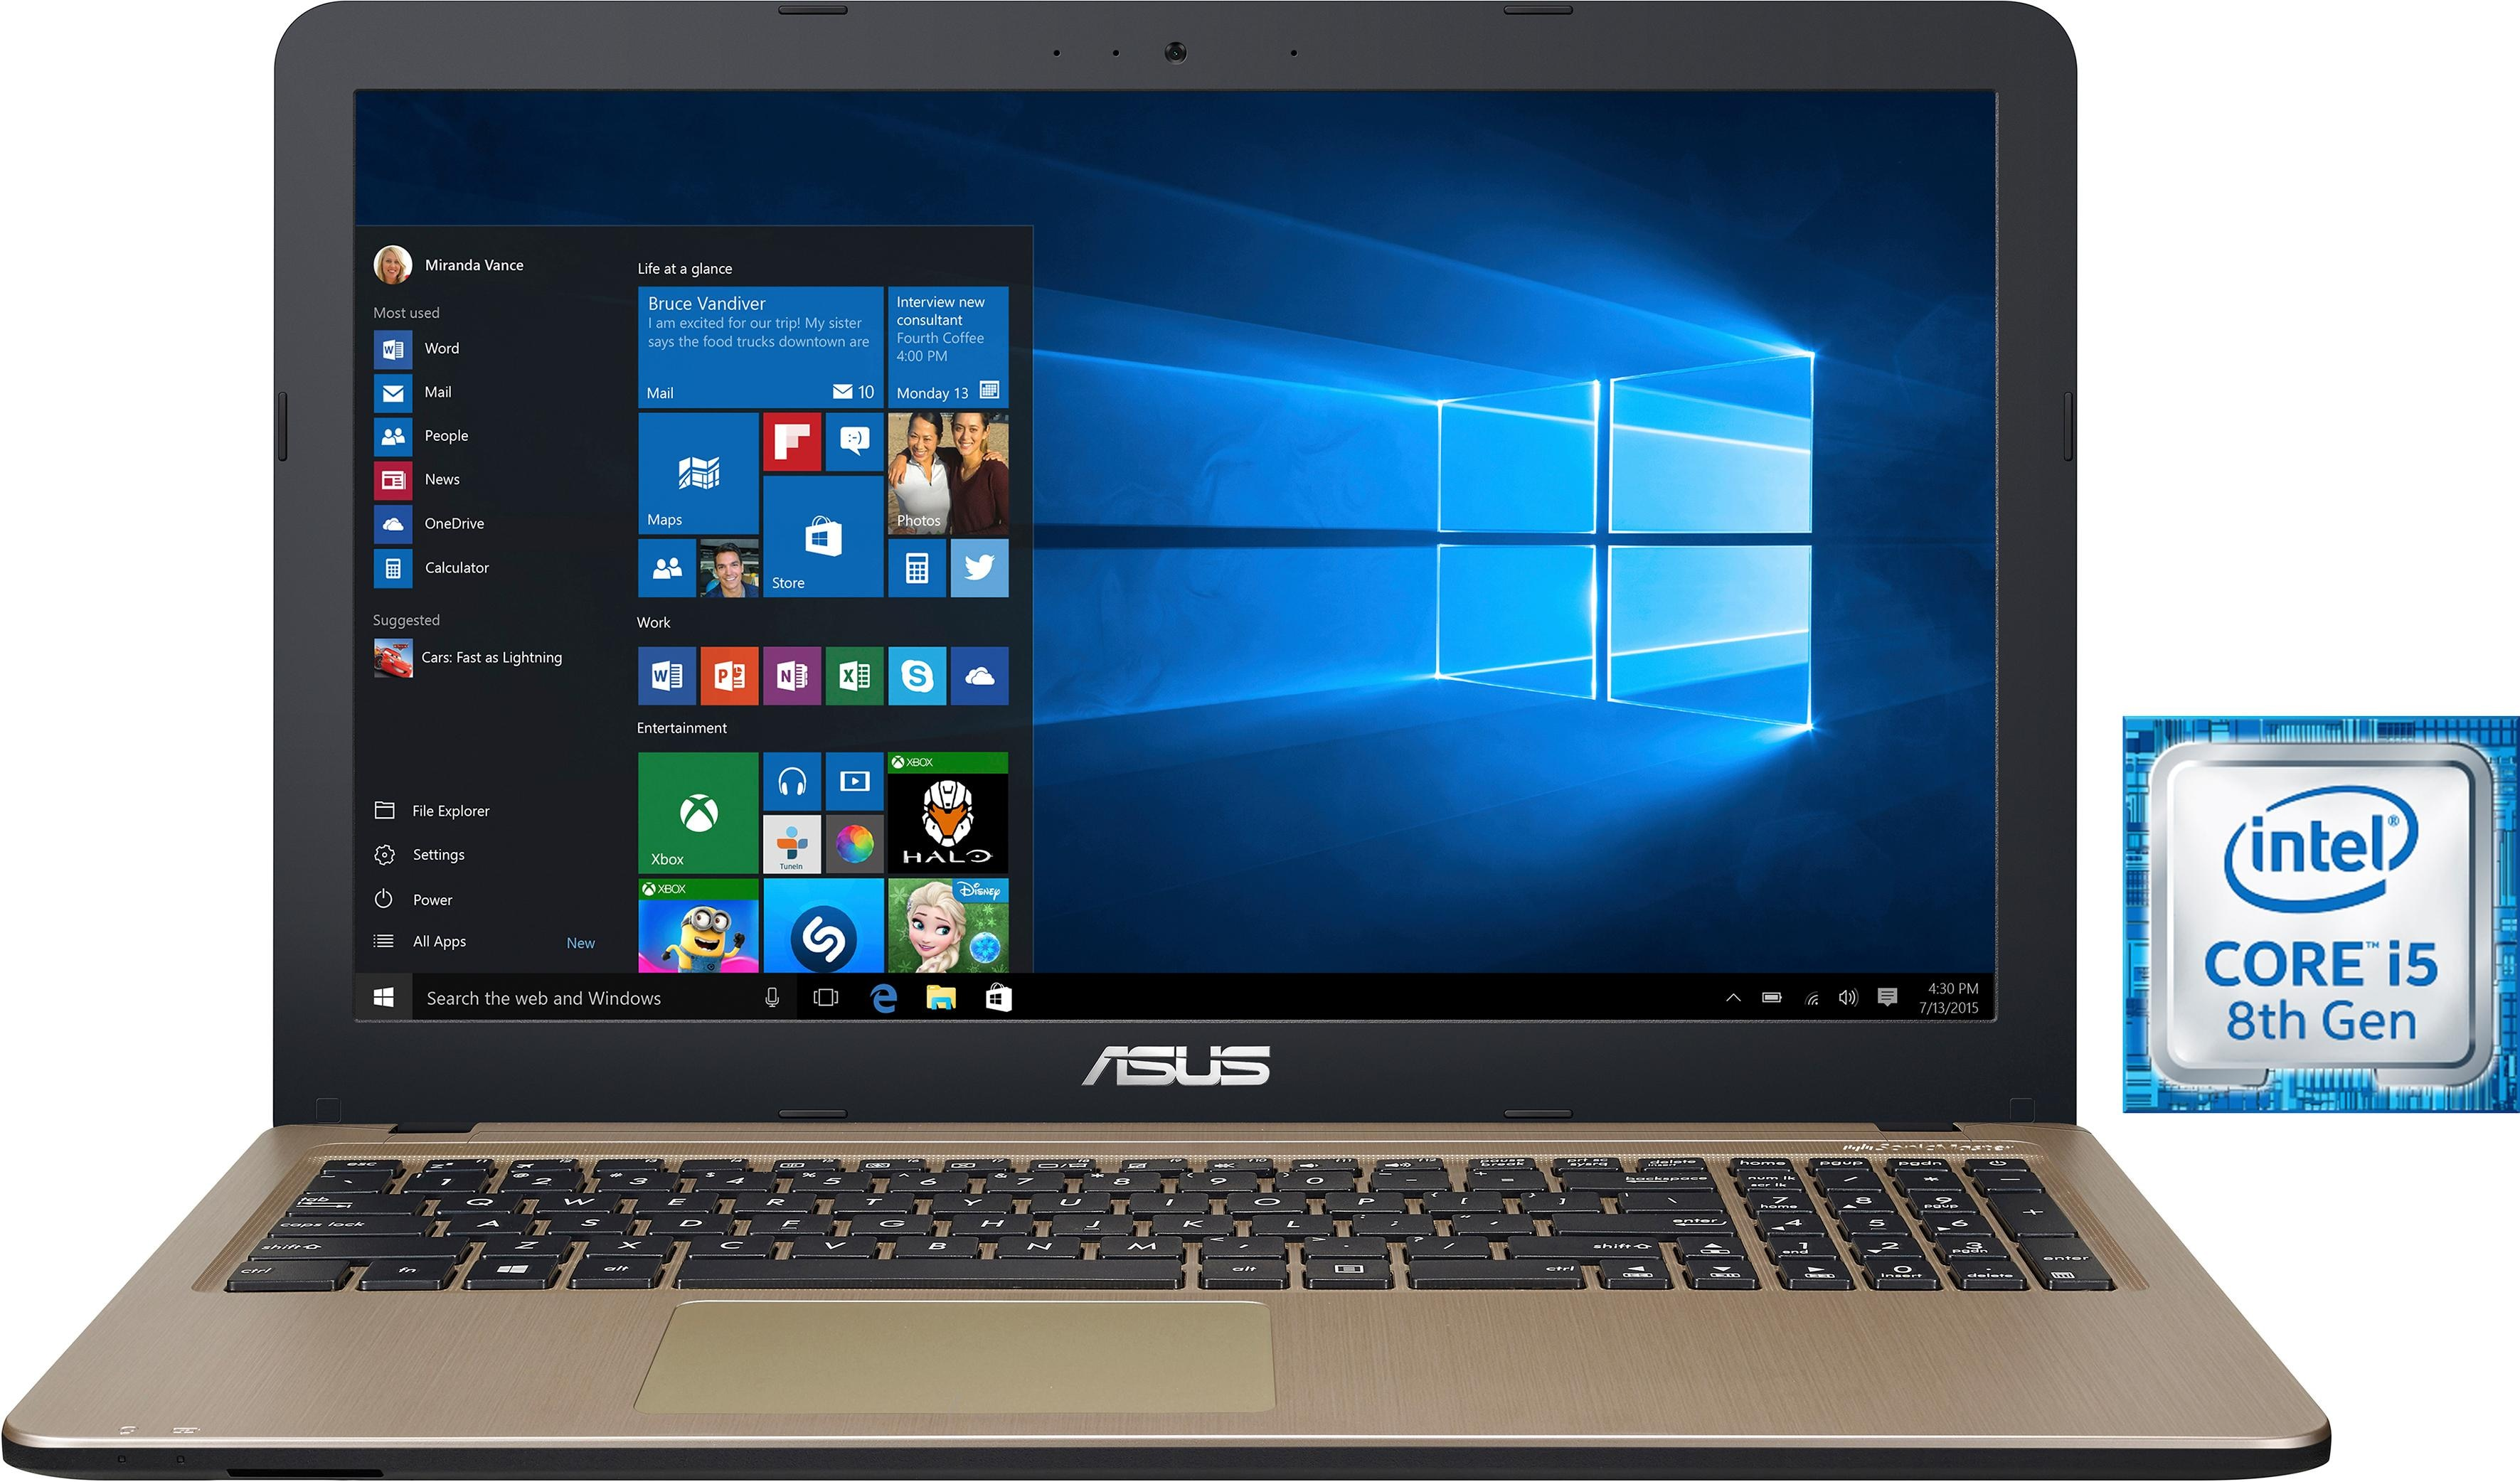 Asus F540UA-DM1071T Notebook (39,62 cm / 15,6 Zoll, Intel, Core i5, 256 GB SSD)